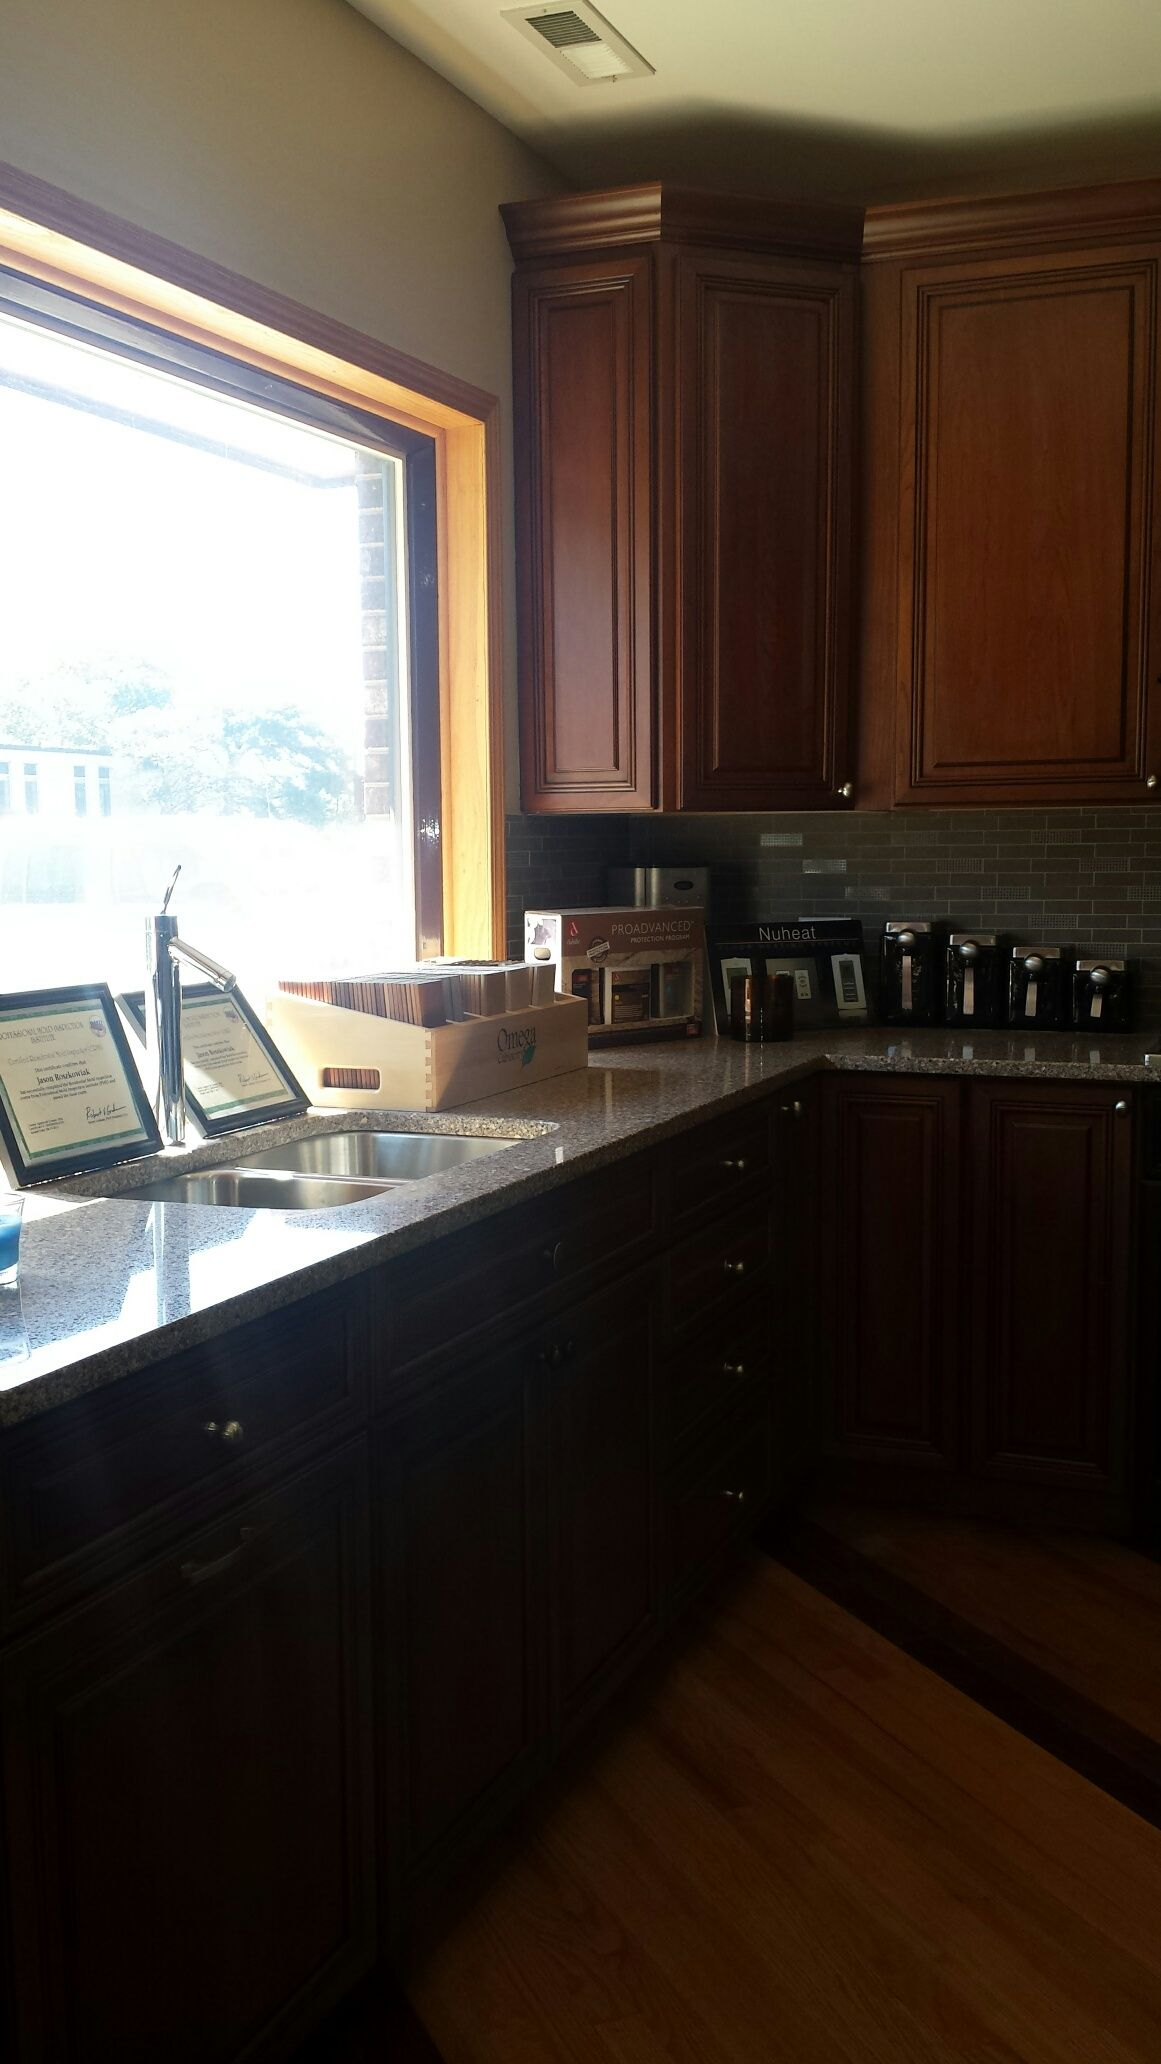 Come Visit Awesome Design Contracting Showroom In Elk Grove Village Cool Designs Home Decor Kitchen Cabinets